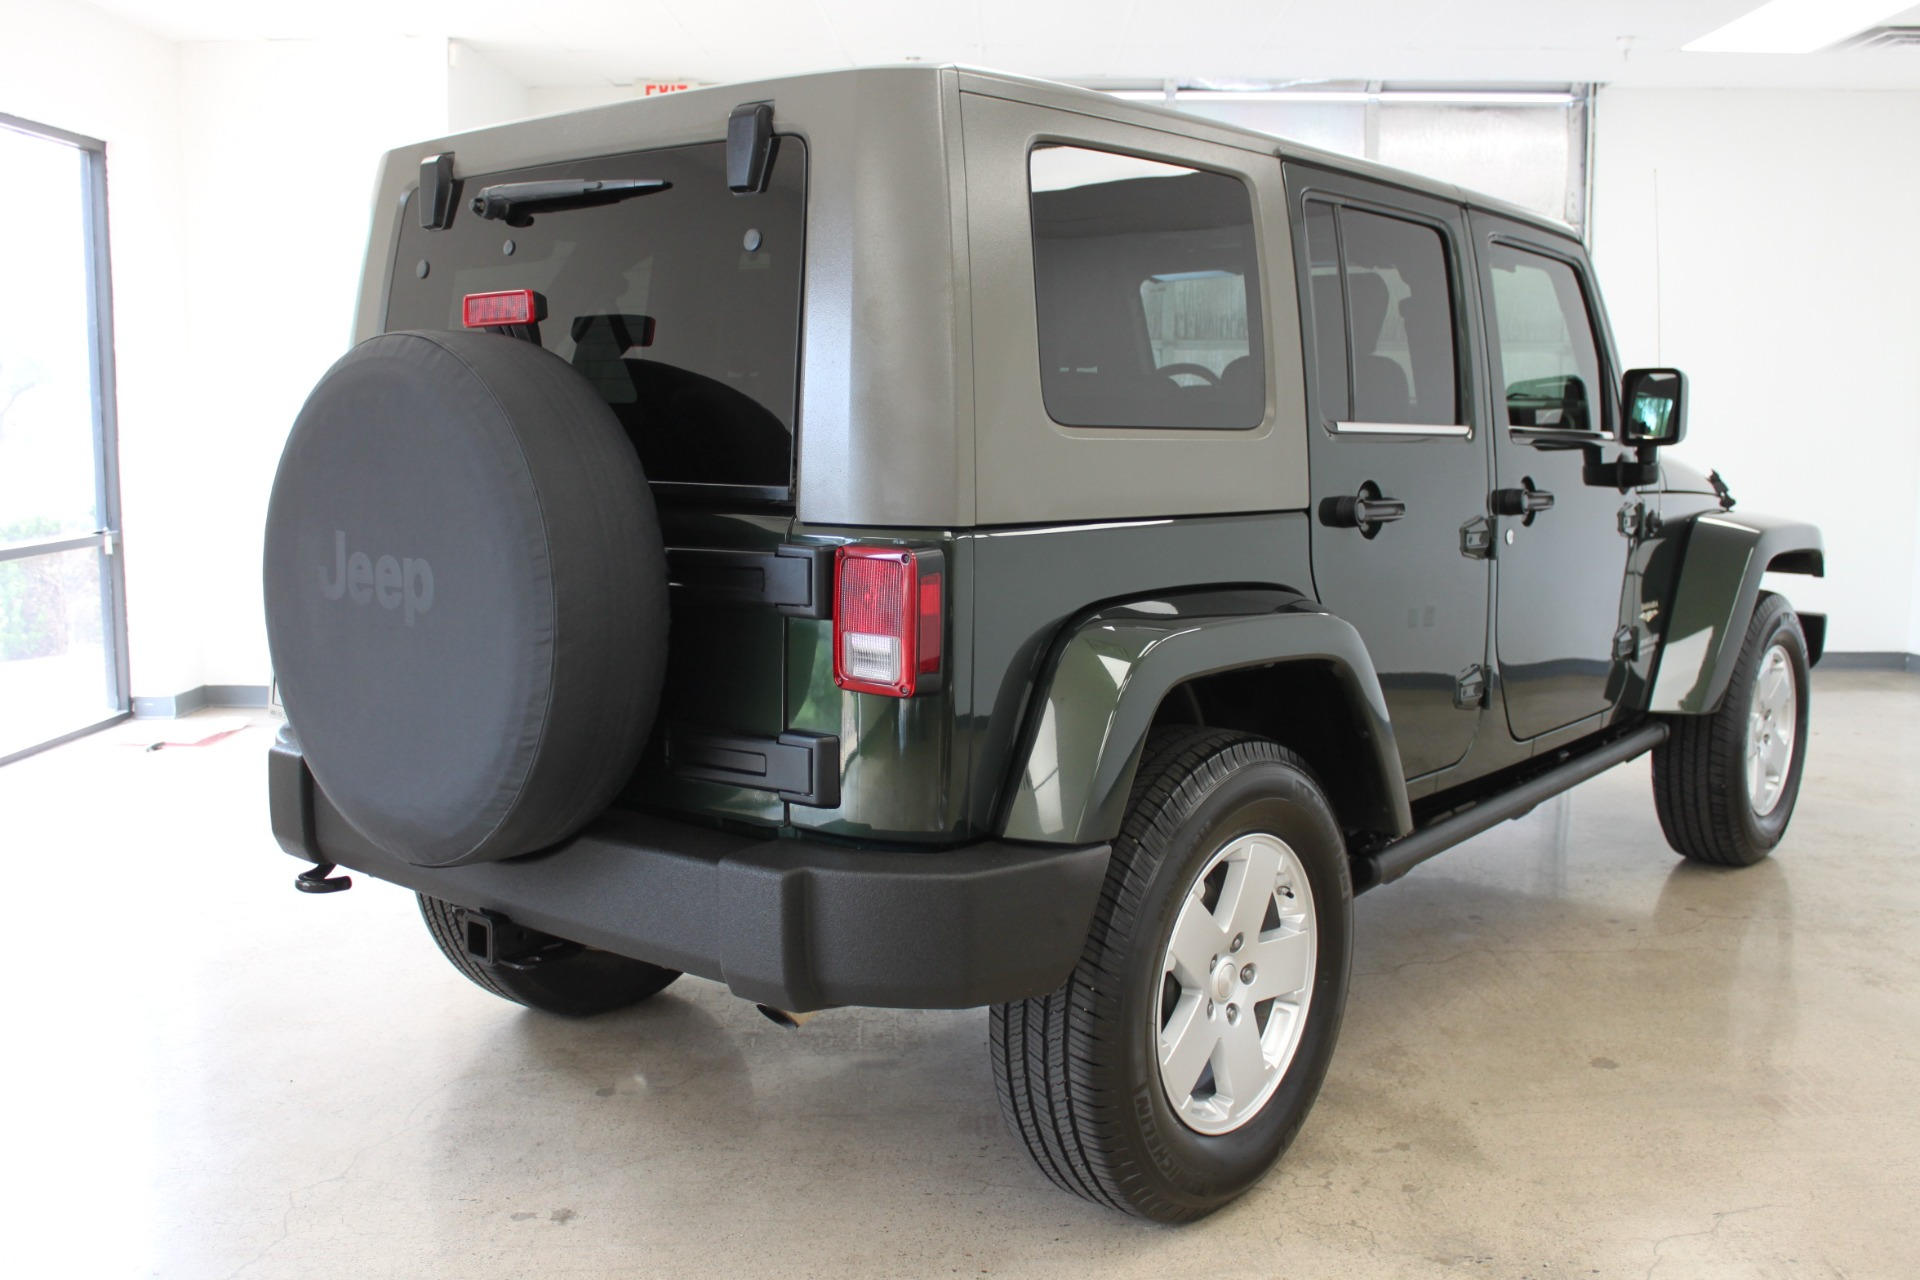 Used-2010-Jeep-Wrangler-Unlimited-Sahara-4X4-Classic